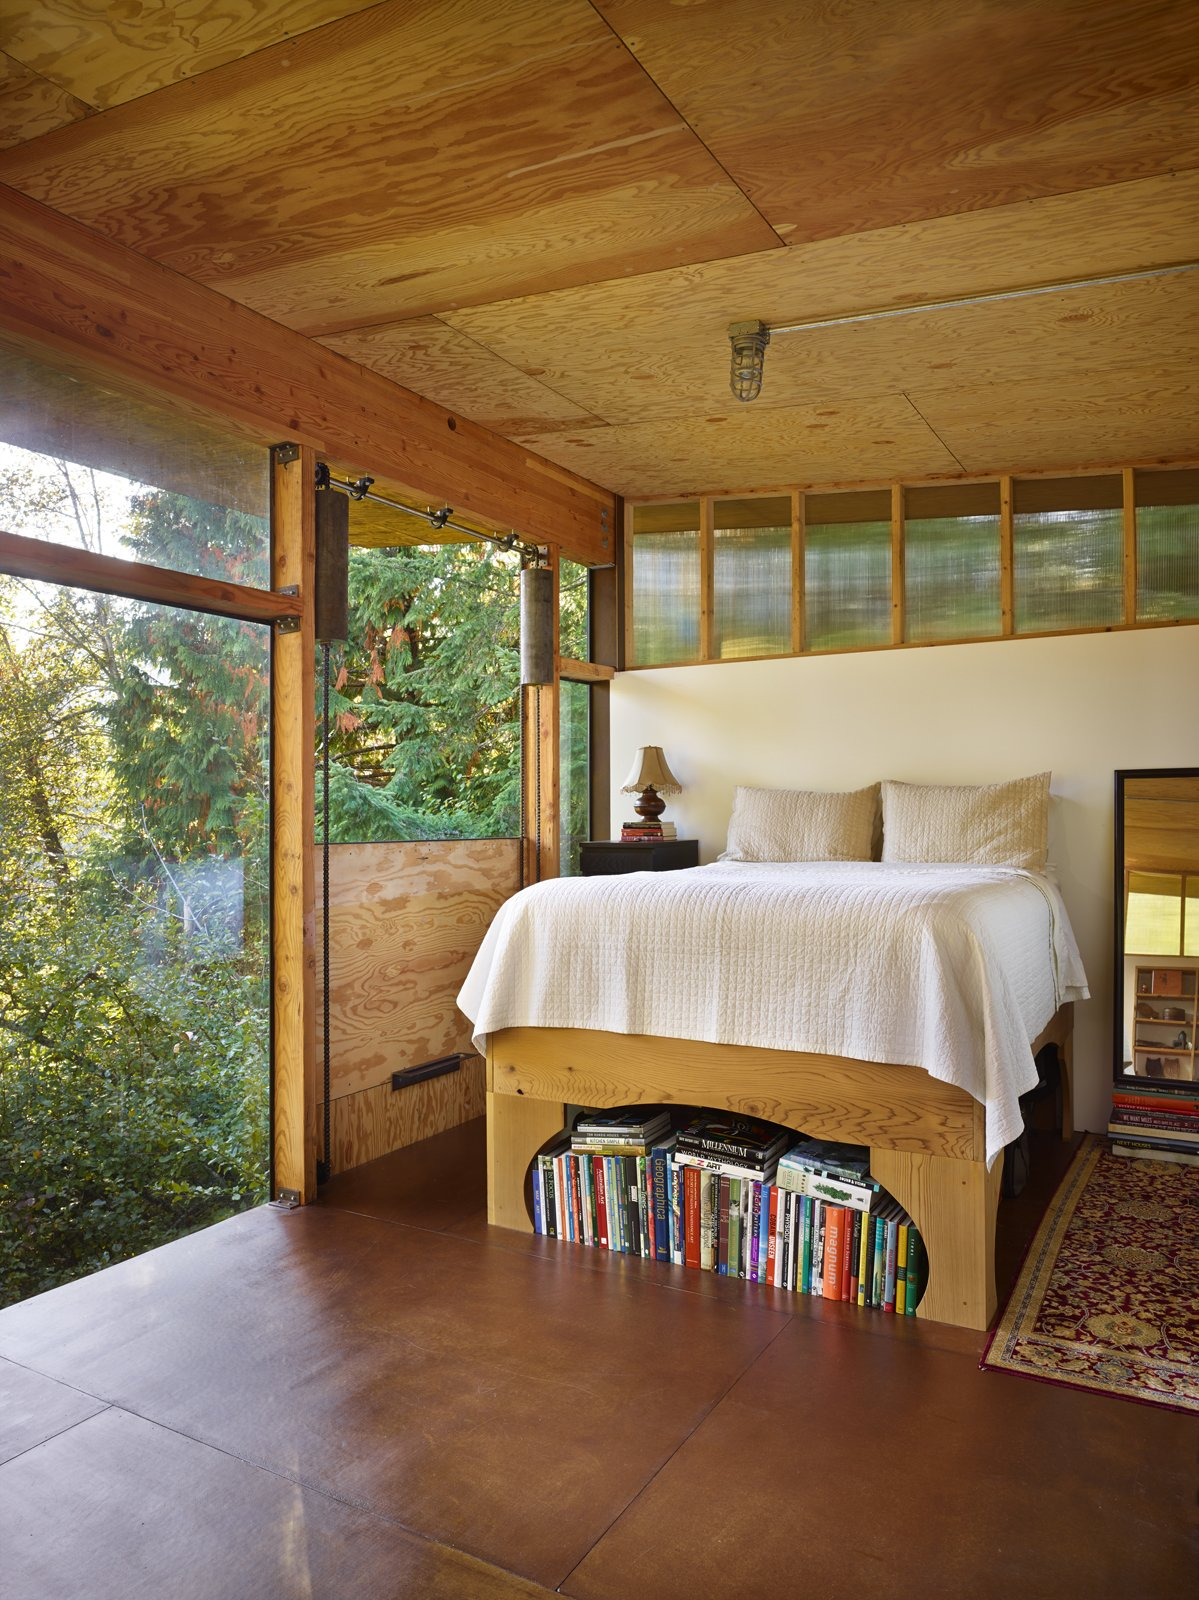 """Bedroom and Bed A door next to the bed drops down, opening the room to its surroundings. """"It's a fantastic way to ventilate the space, but also makes sleeping in the loft feel like camping when it's down,"""" Eerkes says.  Bedrooms by Dwell from An Eco-Friendly Compact Cabin in Washington"""